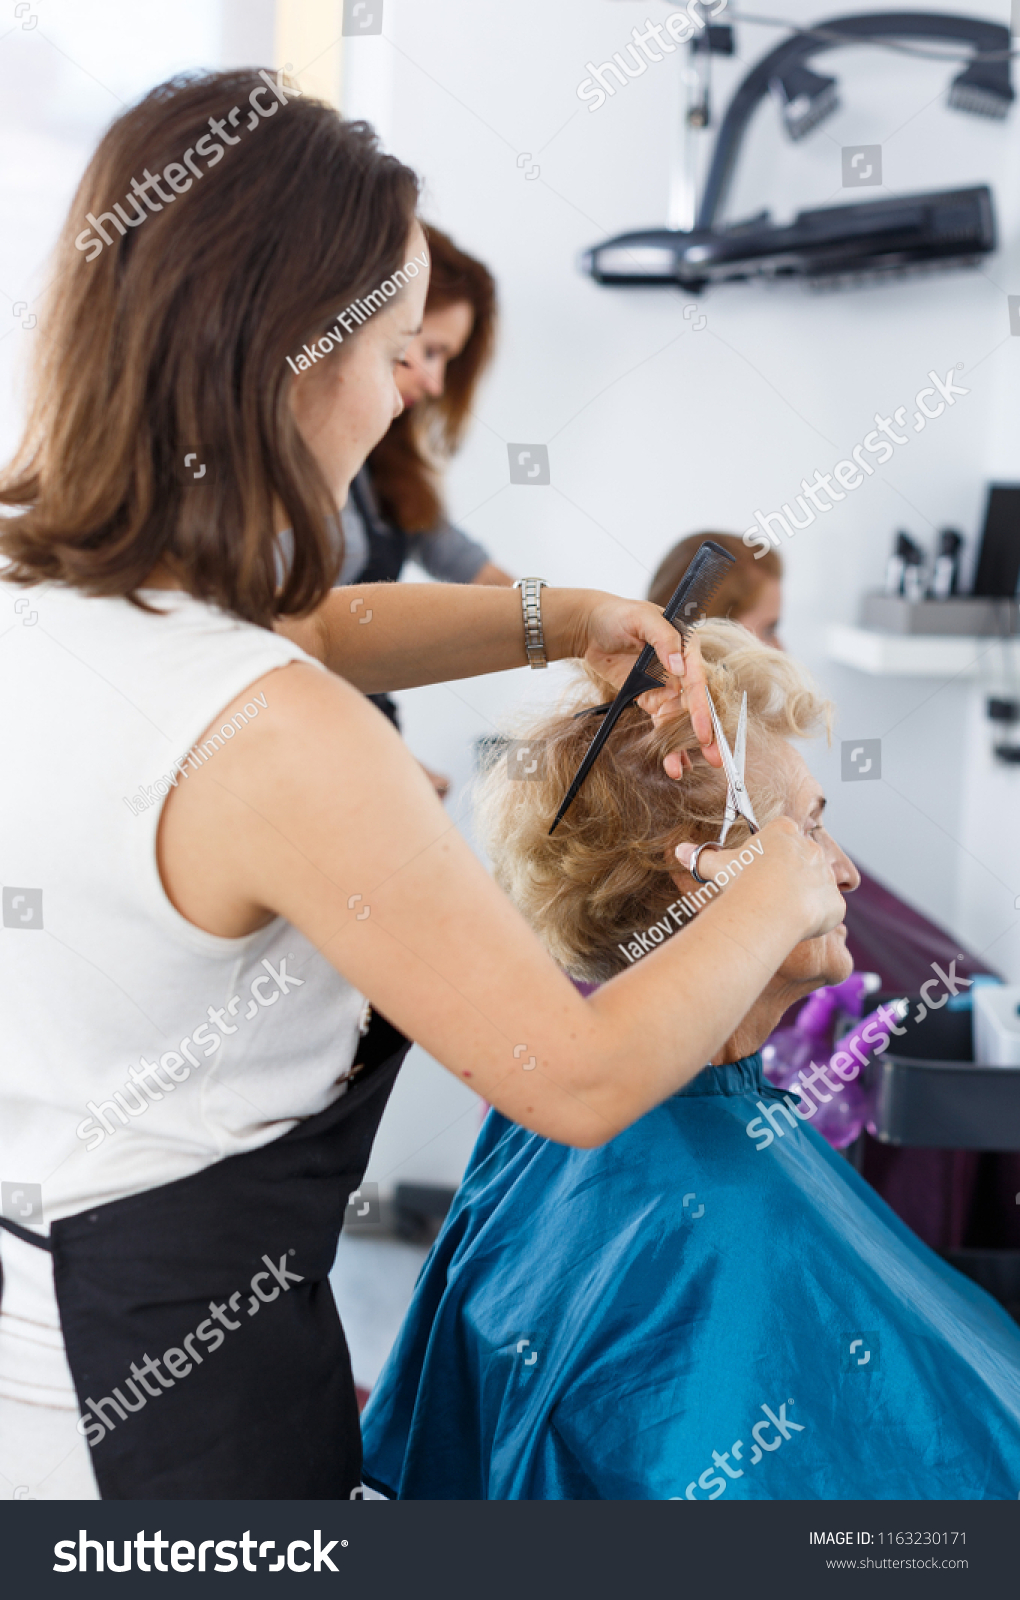 Salon Senior Senior Lady Getting Haircutting By Professional Stock Photo